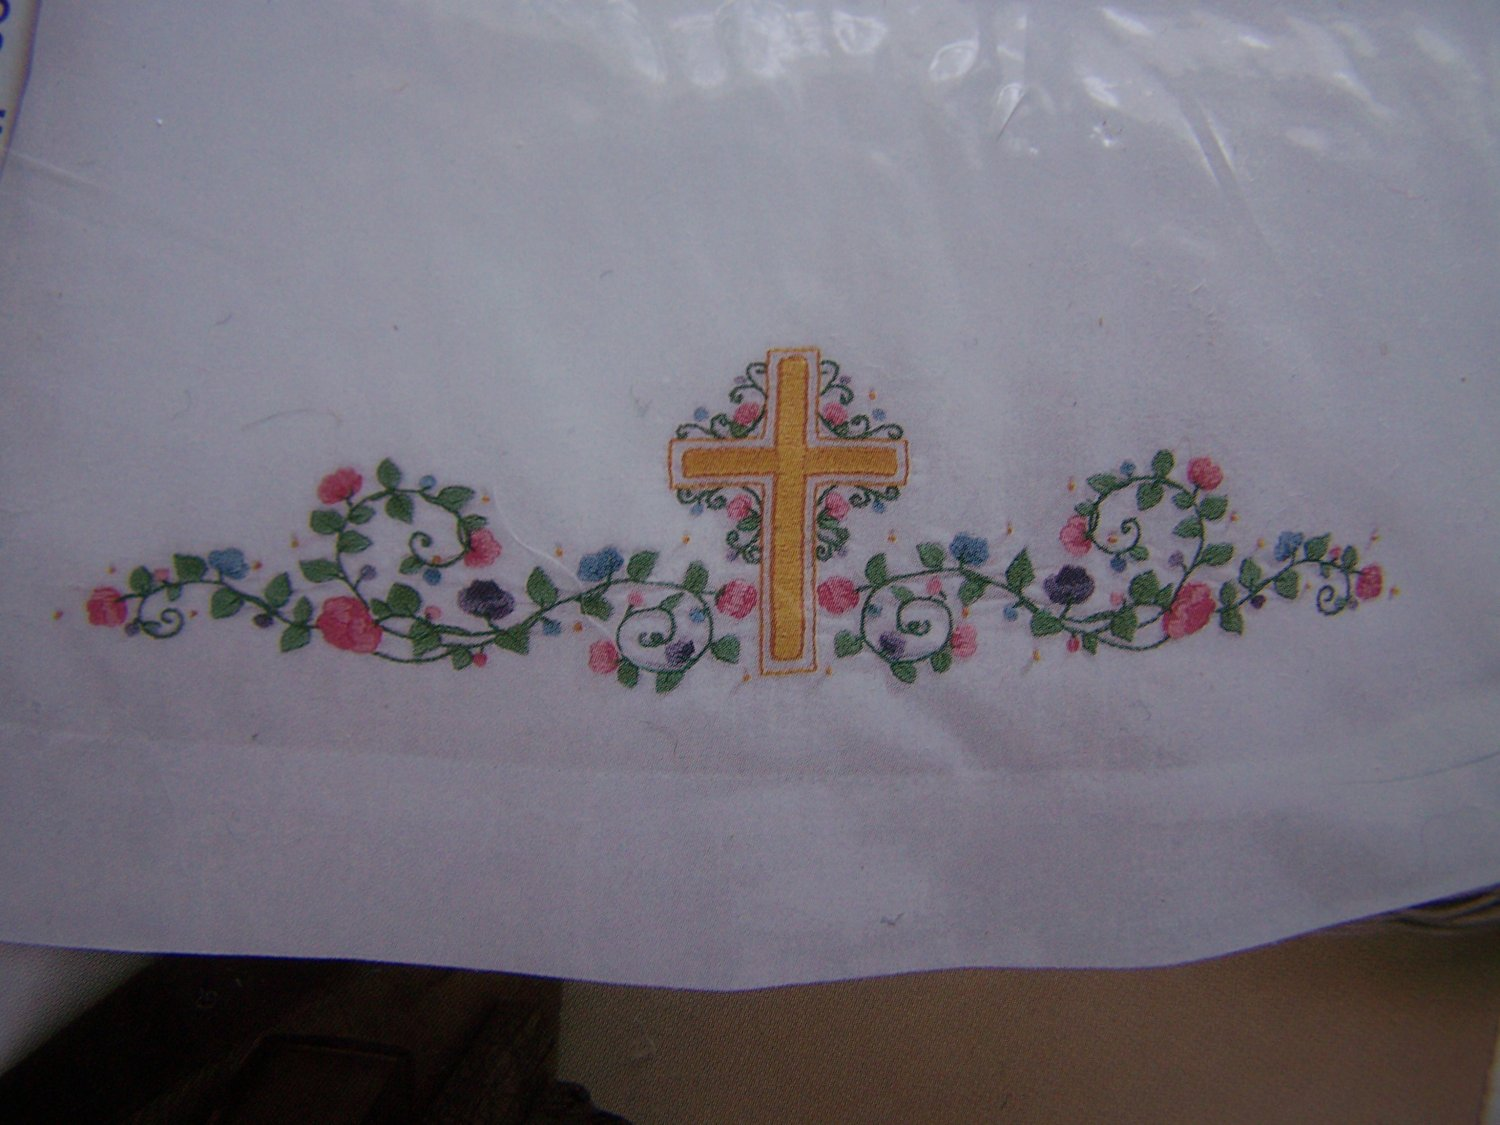 Bucilla Special Edition Floral Cross Embroidery Stamped Pillowcases Set of 2 65328